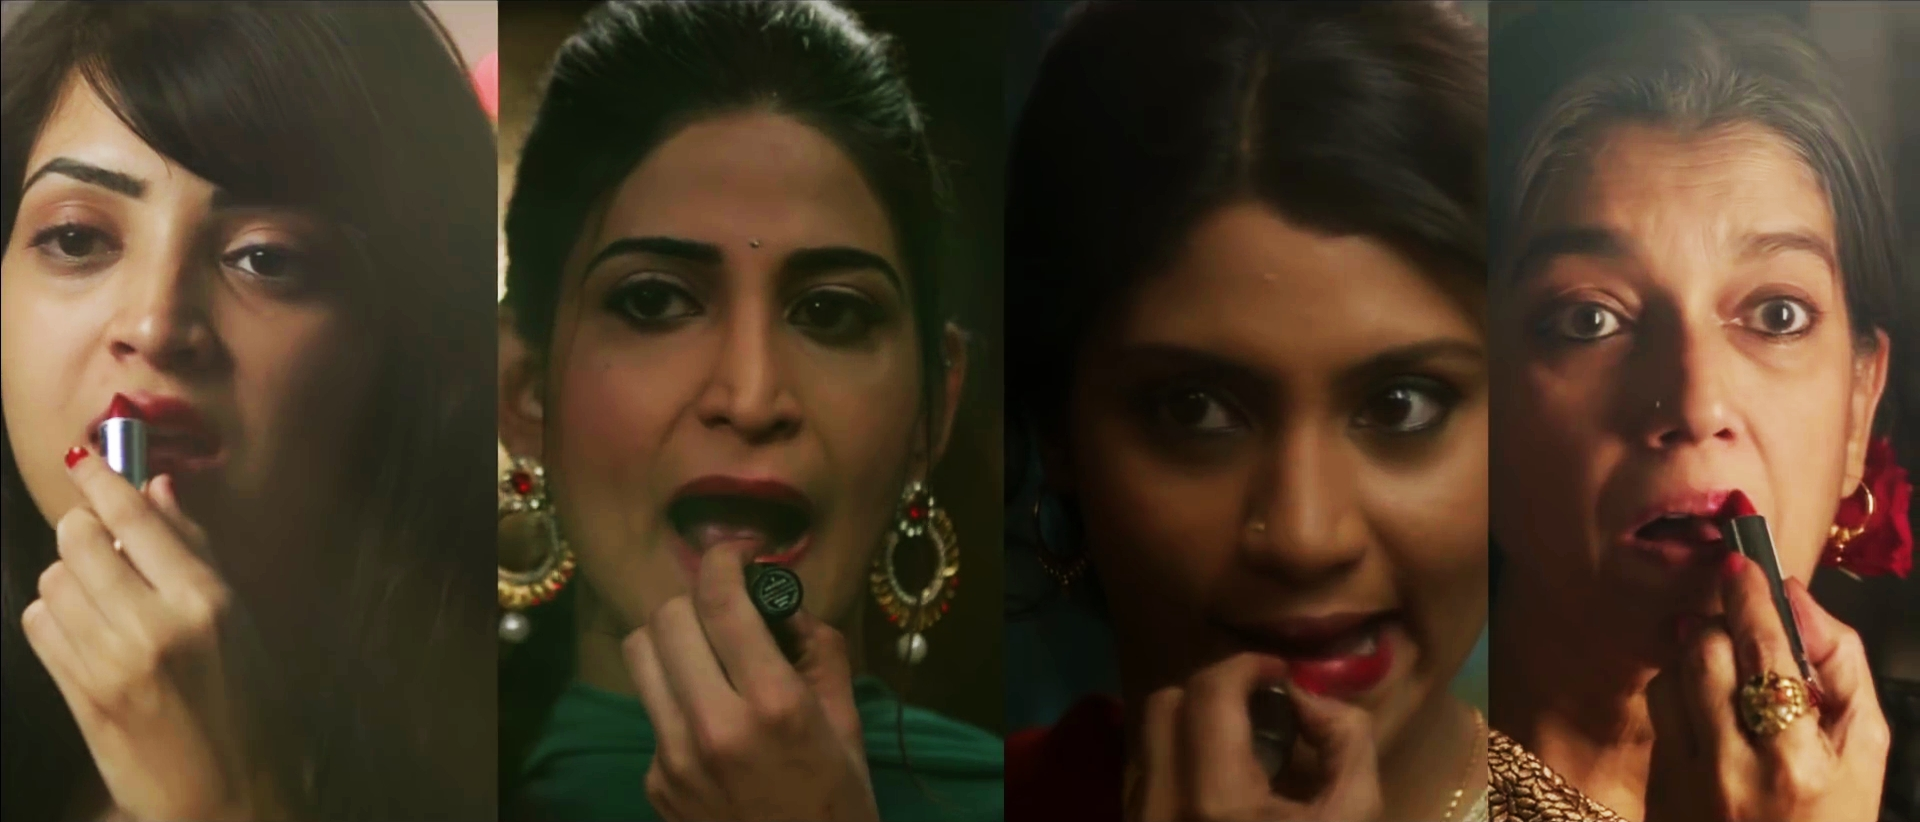 A still from Lipstick Under My Burkha.